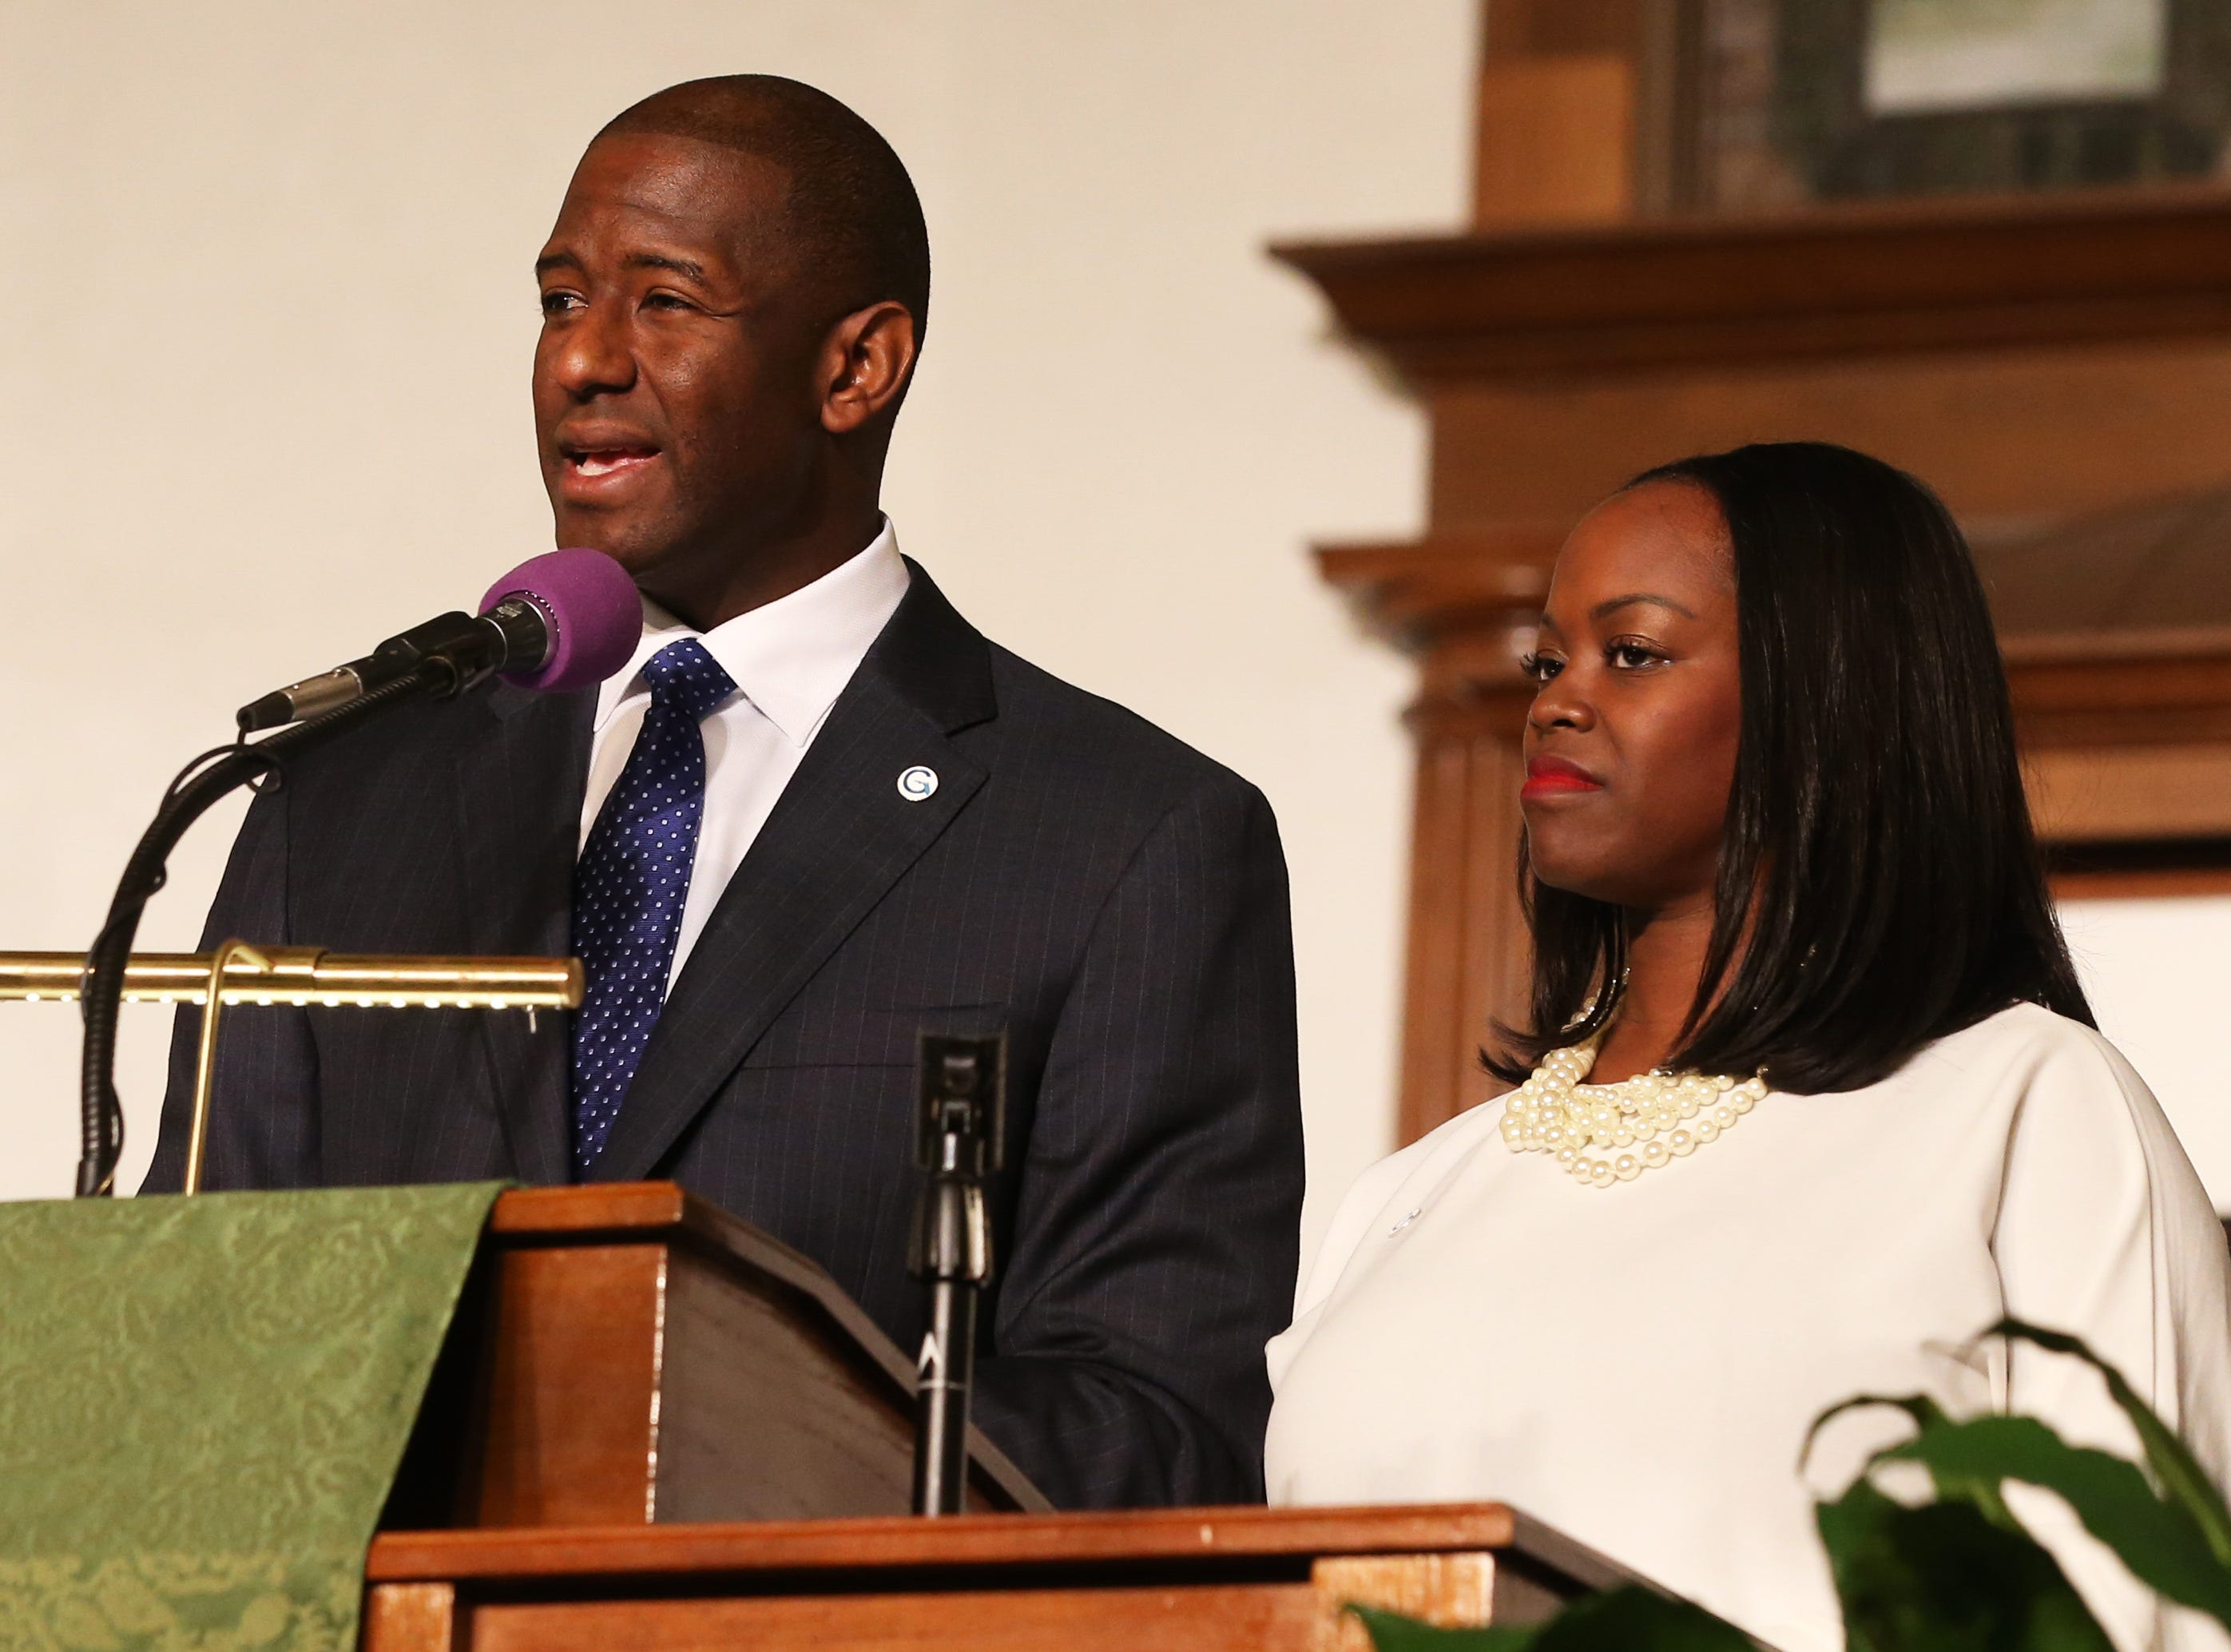 'This was not just about an election cycle': Andrew Gillum concedes in Florida governor's race